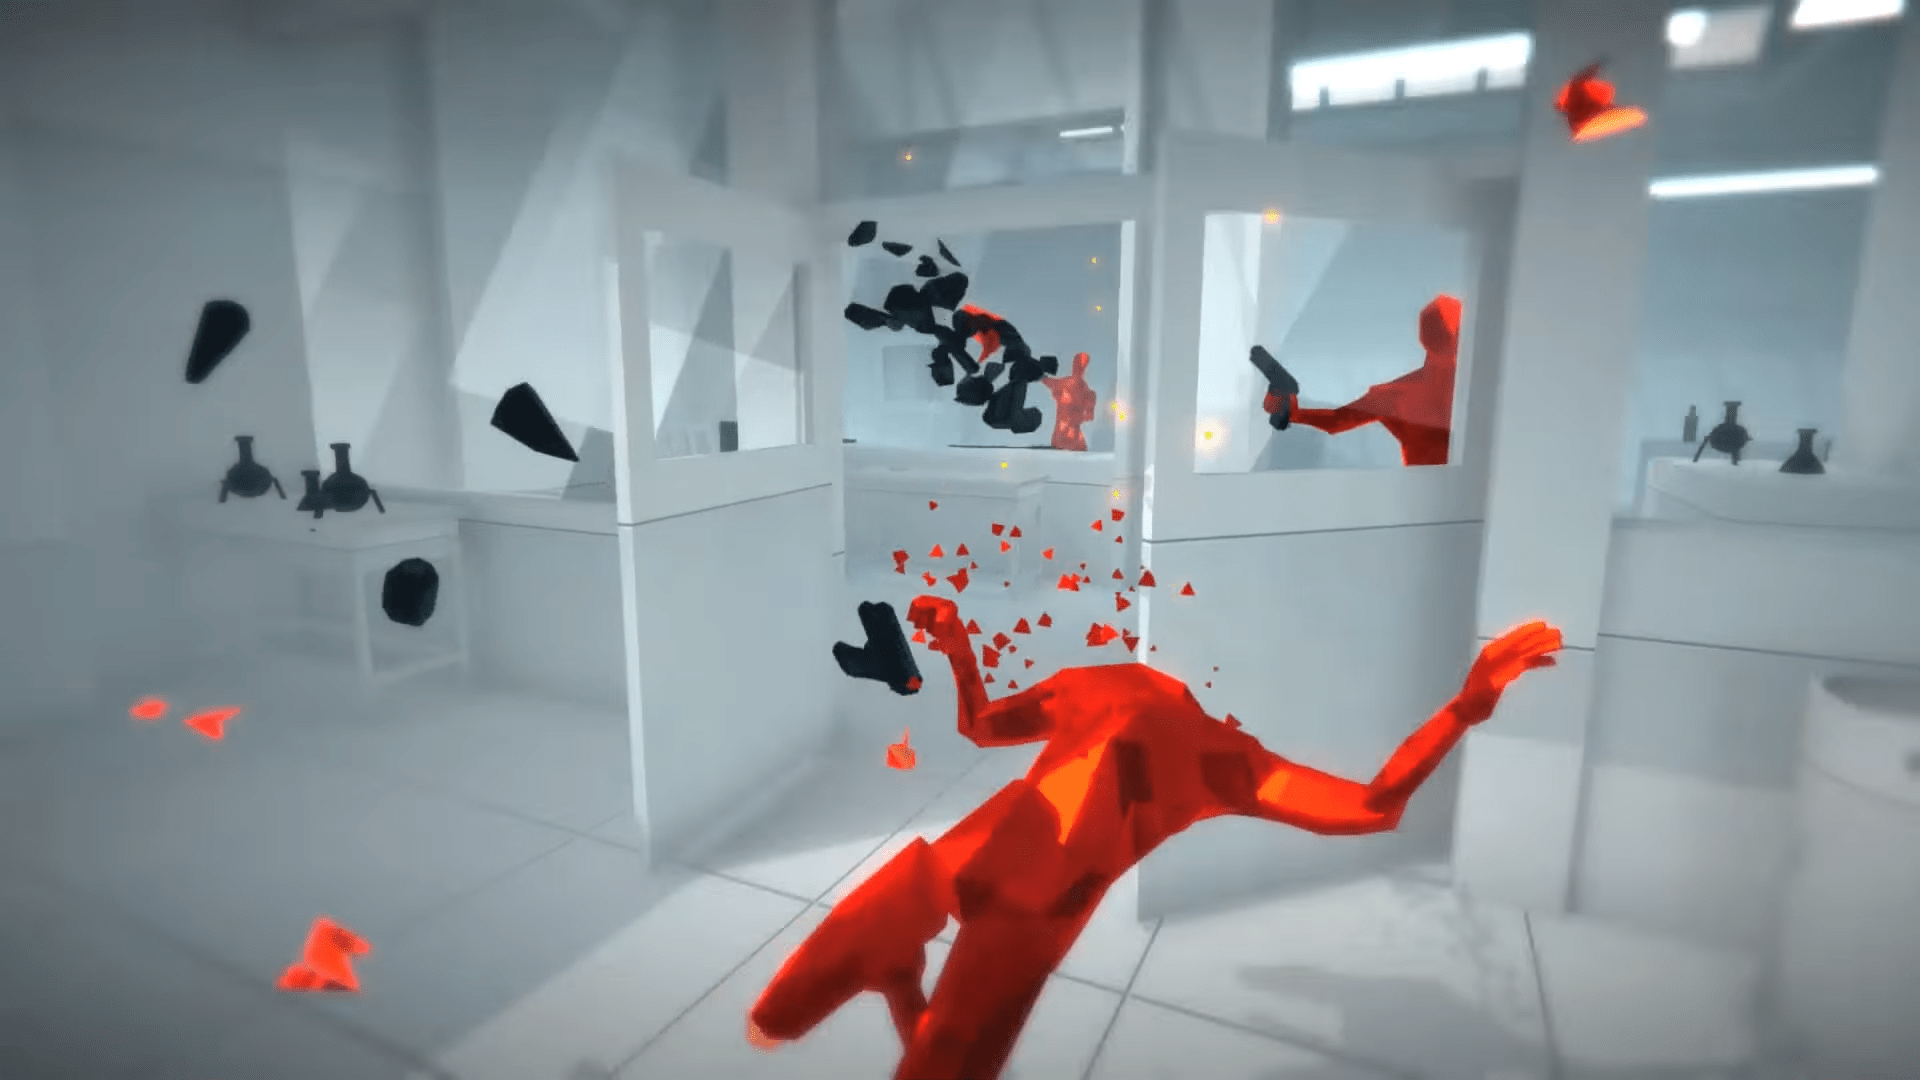 Superhot Mind Control Delete Has Some Users Upset With A Somewhat Snarky End State